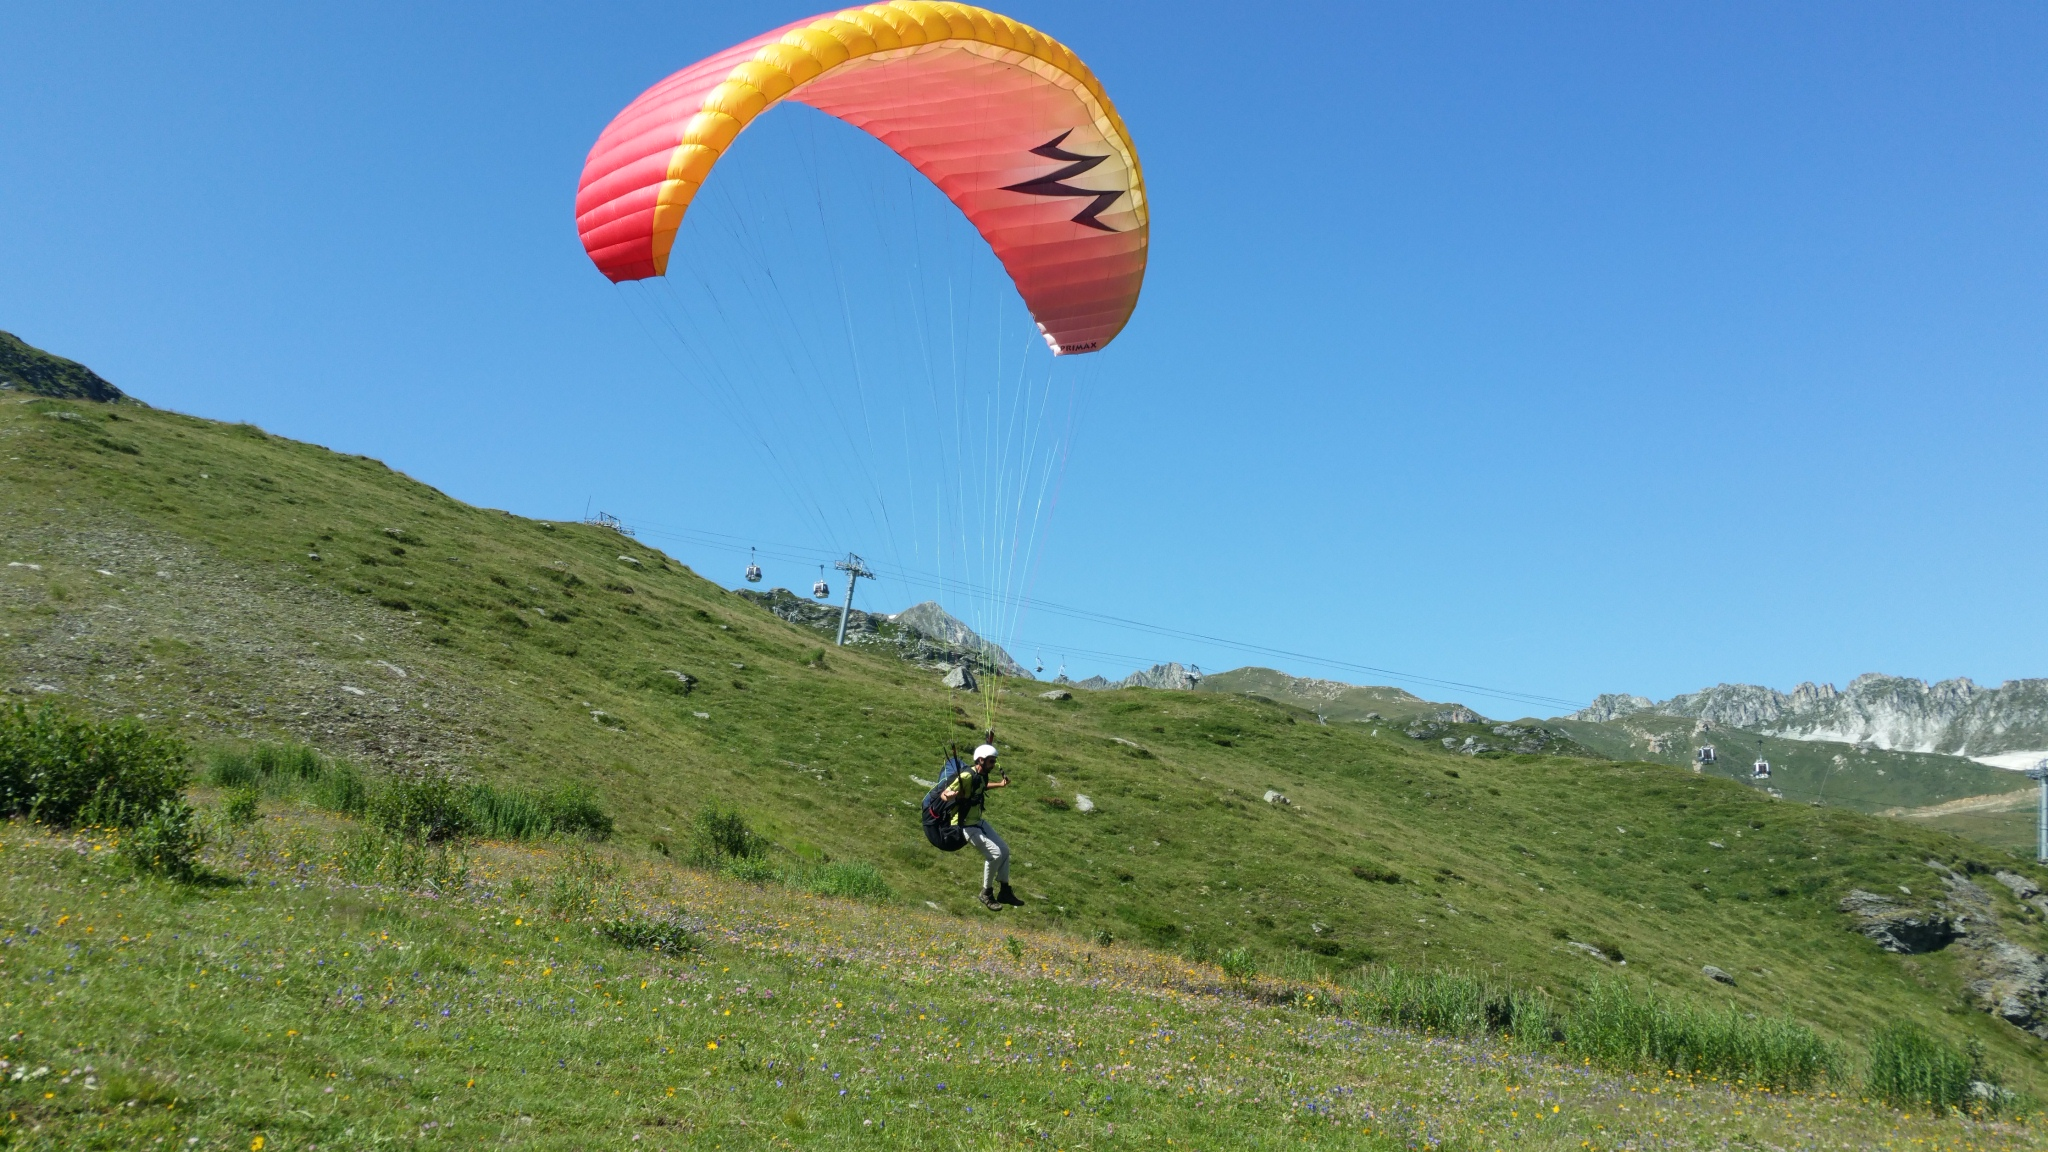 Unbelievable July month for paragliding. 10